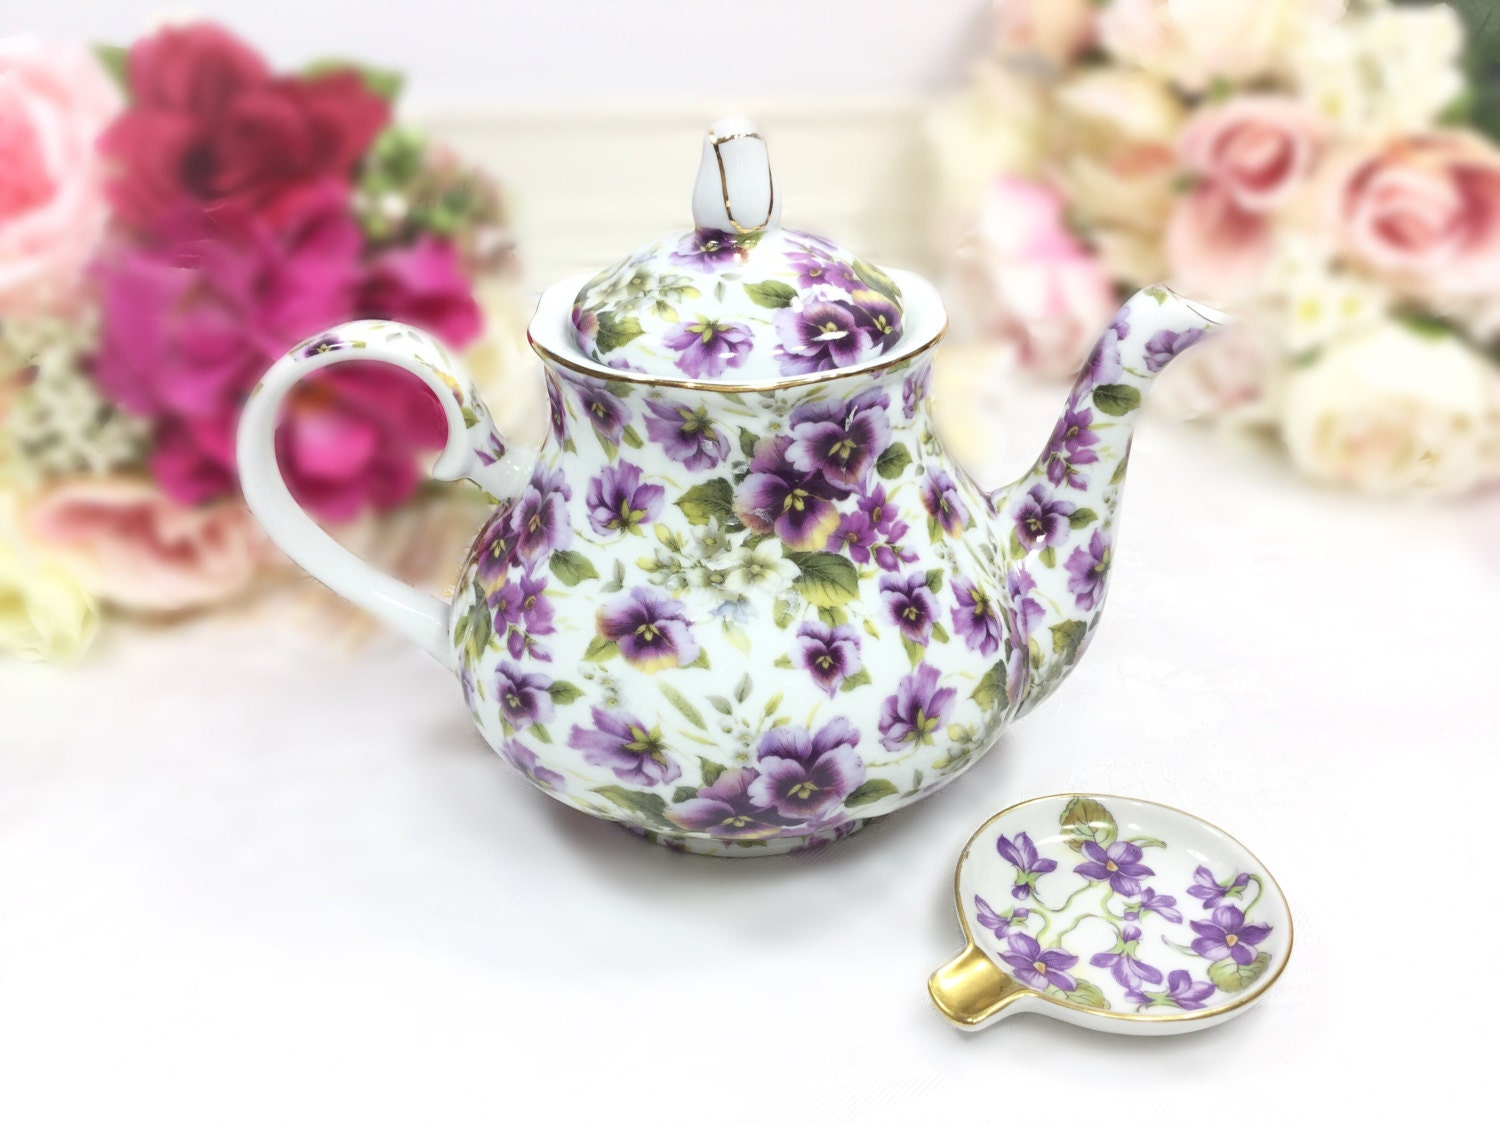 Purple pansy teapot purple floral porcelain teapot for tea set purple pansy teapot purple floral porcelain teapot for tea set tea party wedding formalities by baum bros summer pansy collection a737 reviewsmspy